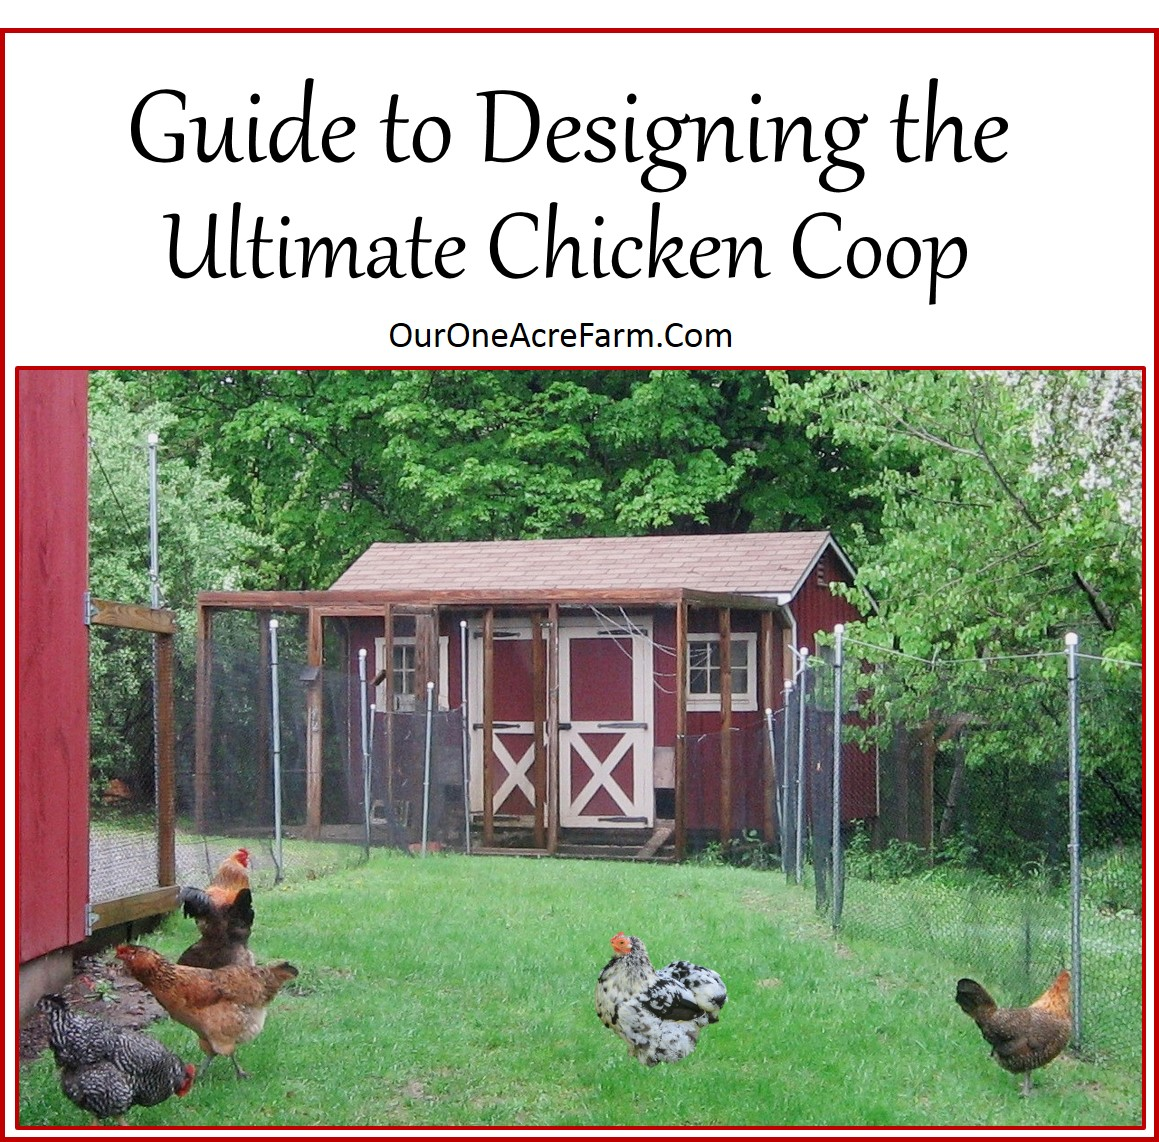 Guide to Designing the Perfect en Coop | on landscape design, perennial garden design, fireplaces design,